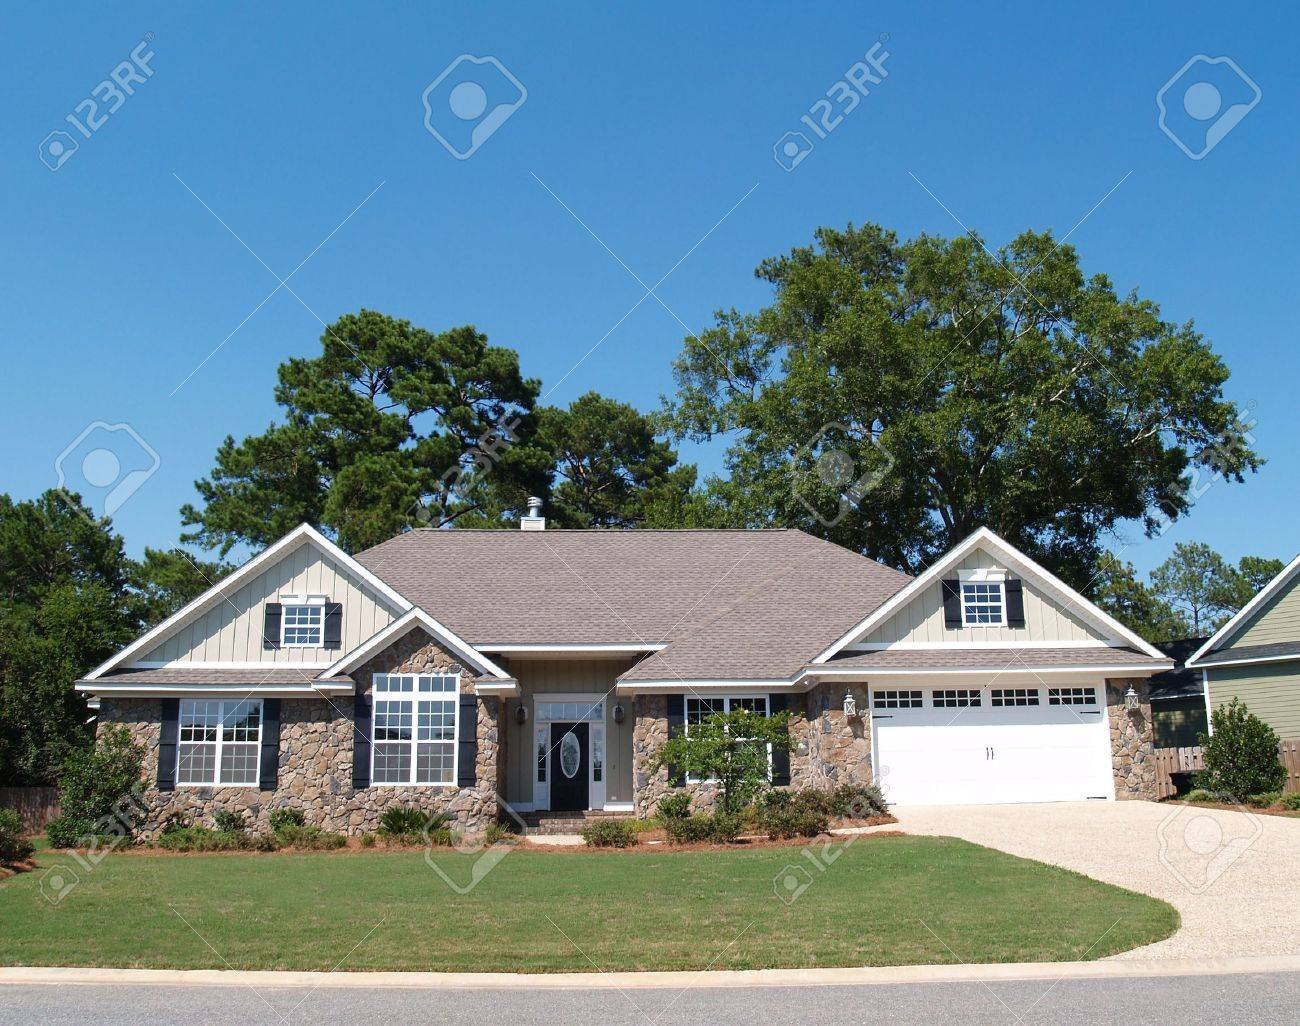 One story residential home with a stone facade. - 5520025